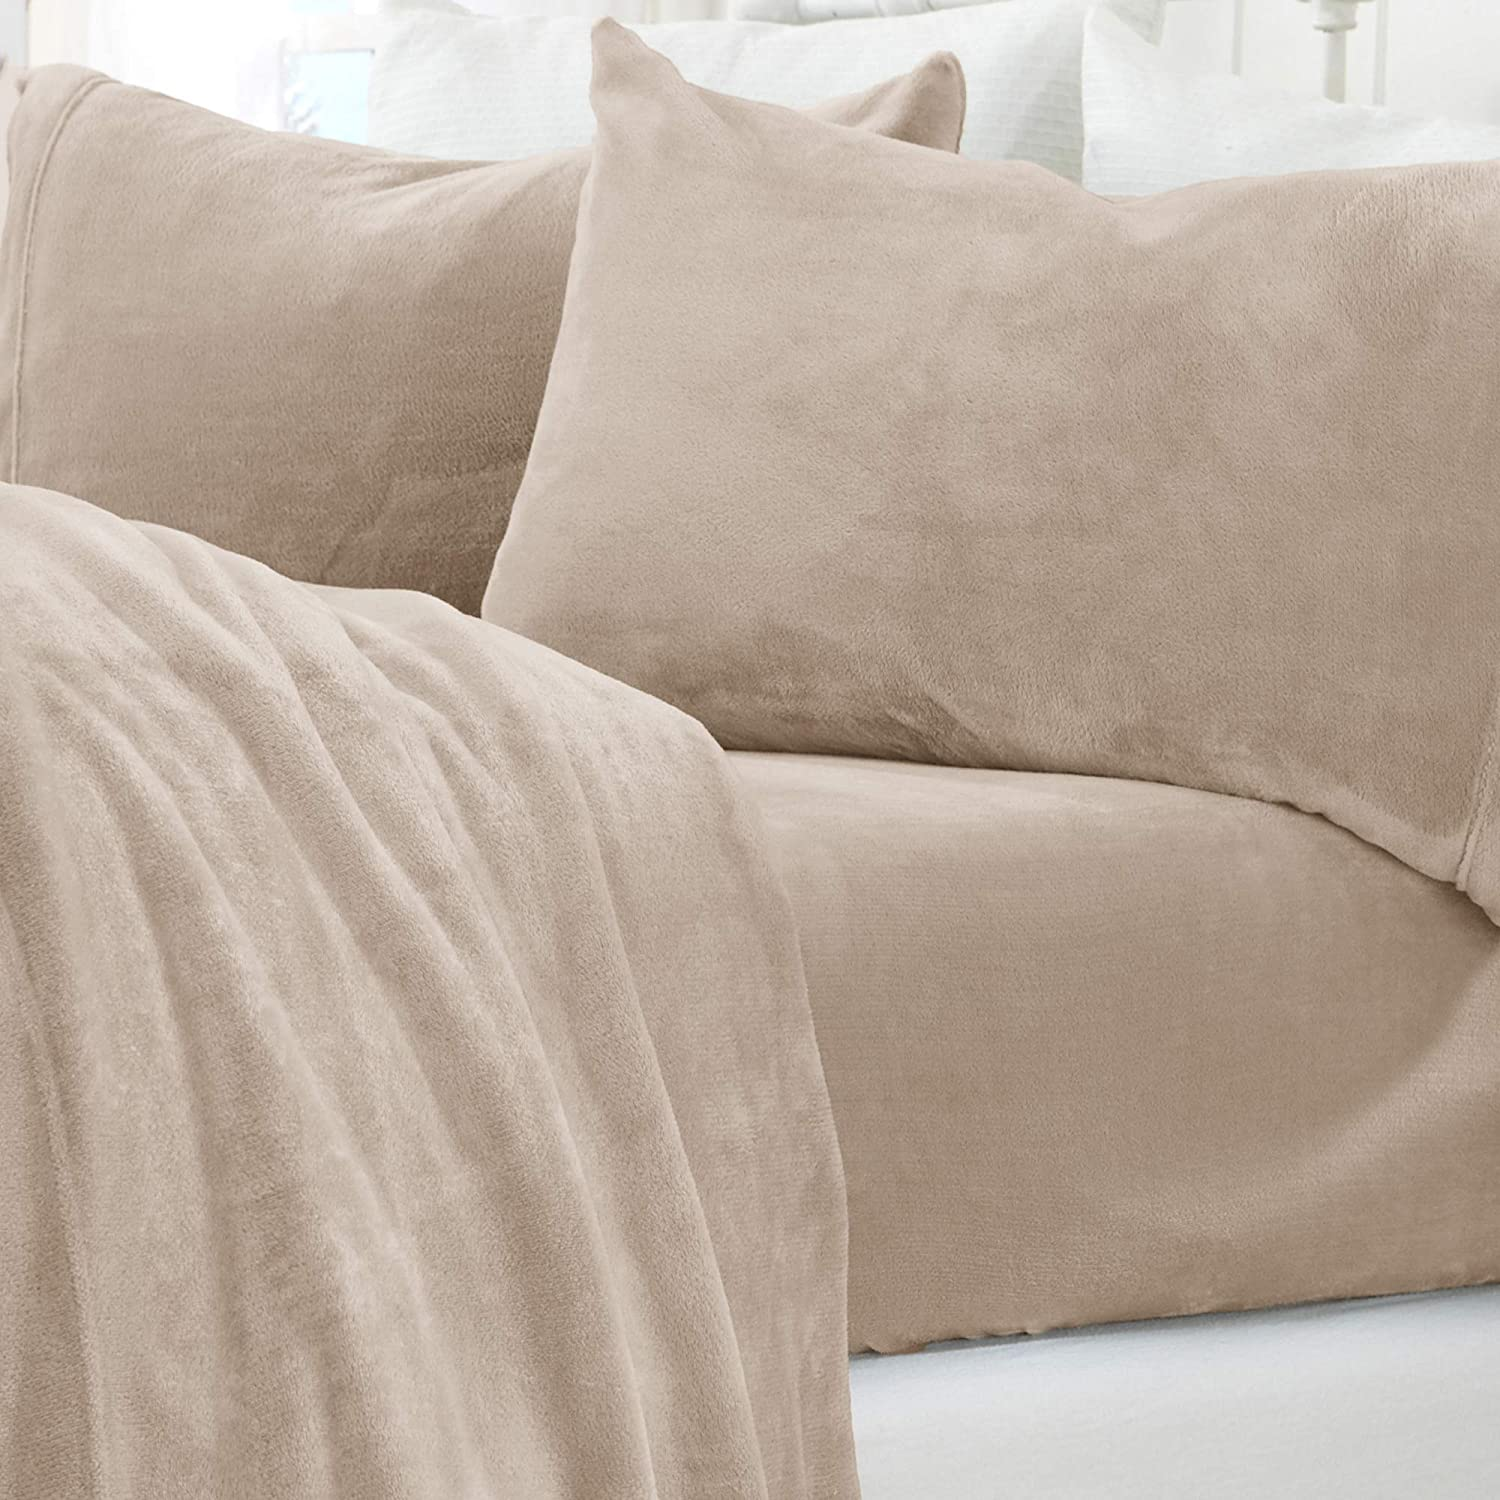 Micro Fleece Extra Soft Cozy Velvet Plush Sheet Set. Deluxe Bed Sheets with Deep Pockets. Velvet Luxe Collection (Twin, Taupe)